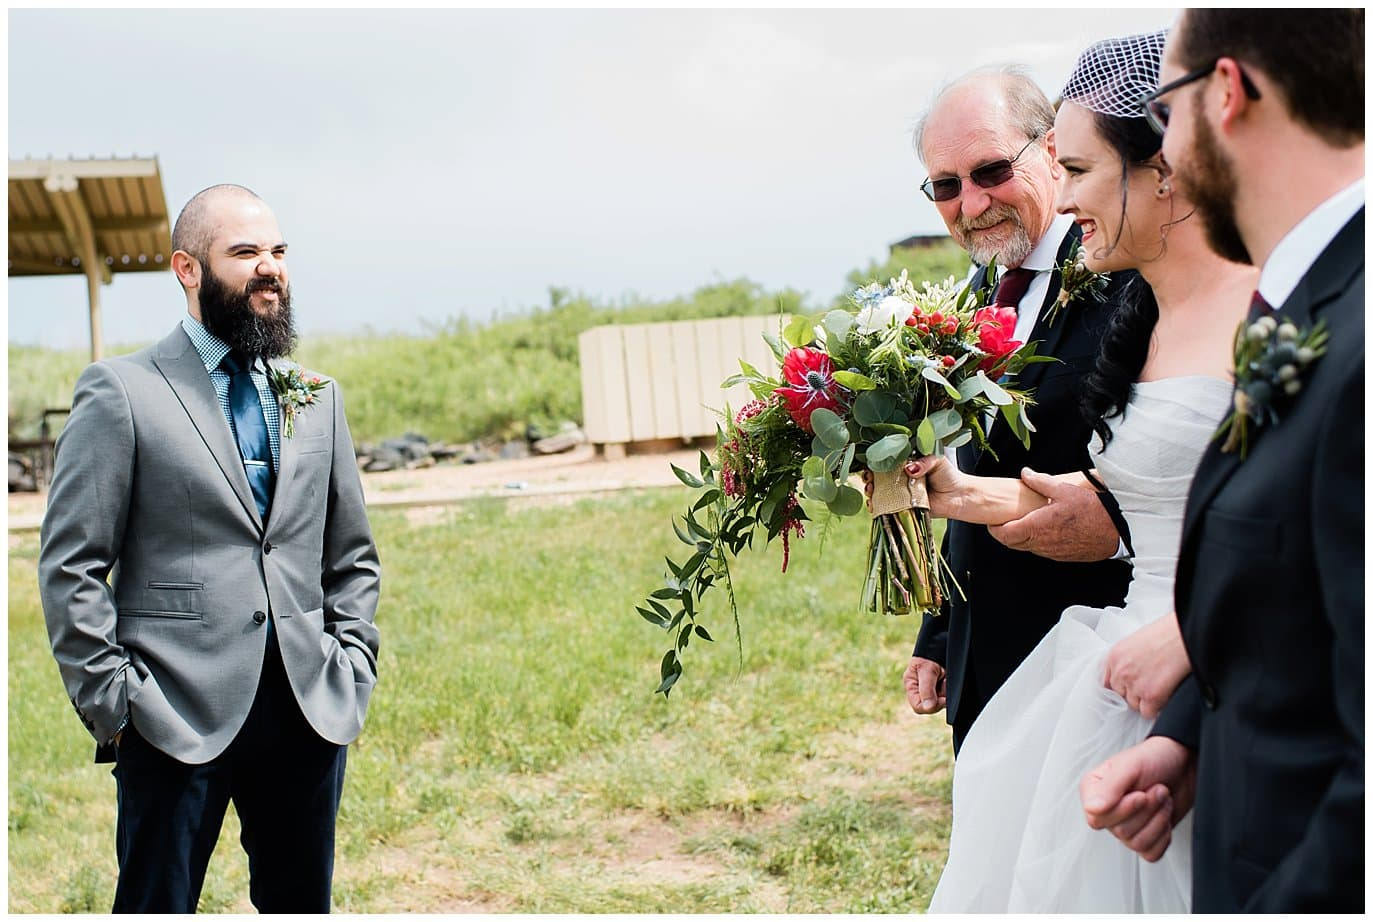 groom seeing bride for first time at wedding photo